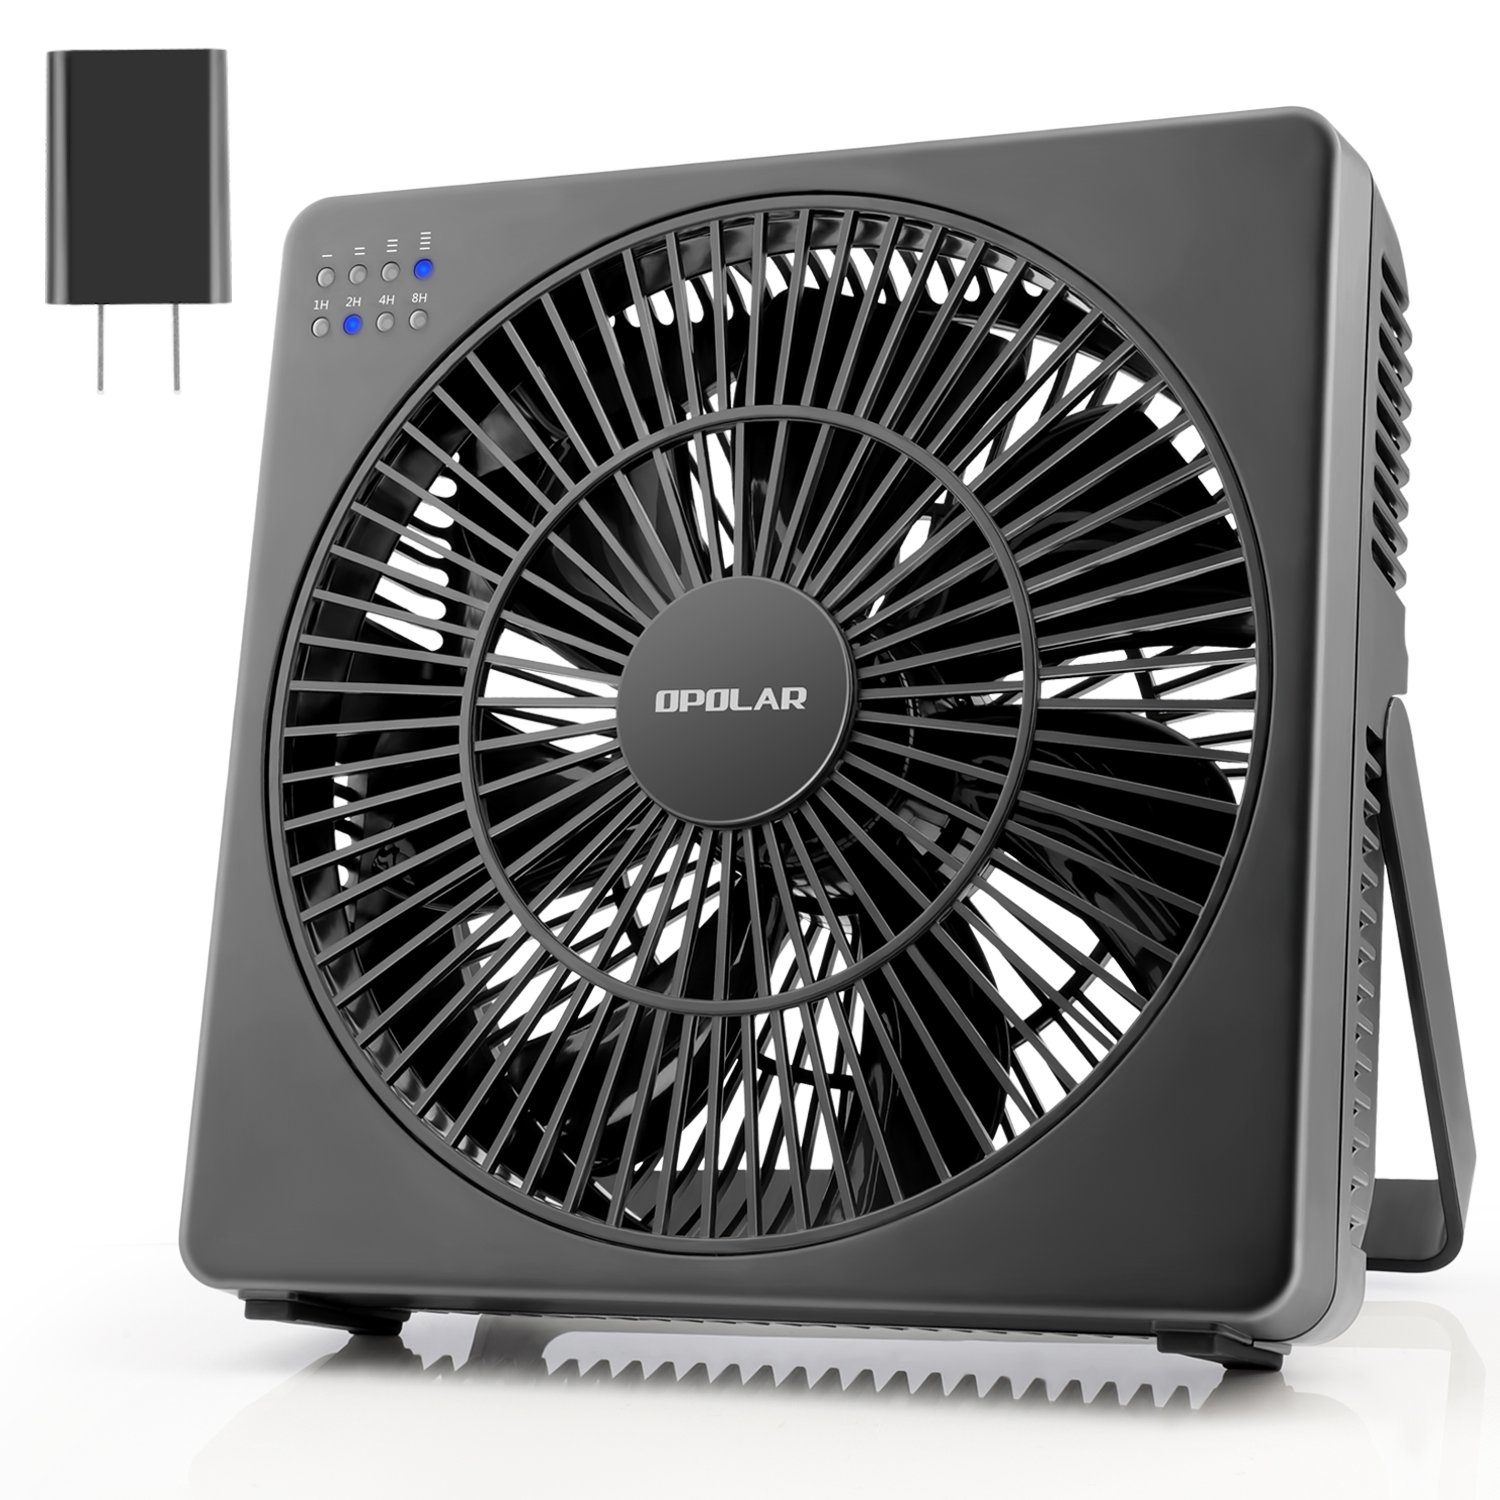 OPOLAR 8 Inch Desk Fan(Included Adapter), USB Operated, 4 Speeds+Natural Wind, Timer, Quiet Operation, Seven Blades, Adjustable Angle, Desktop Personal Cooling Box Fan for Office, Living Room, Bedroom